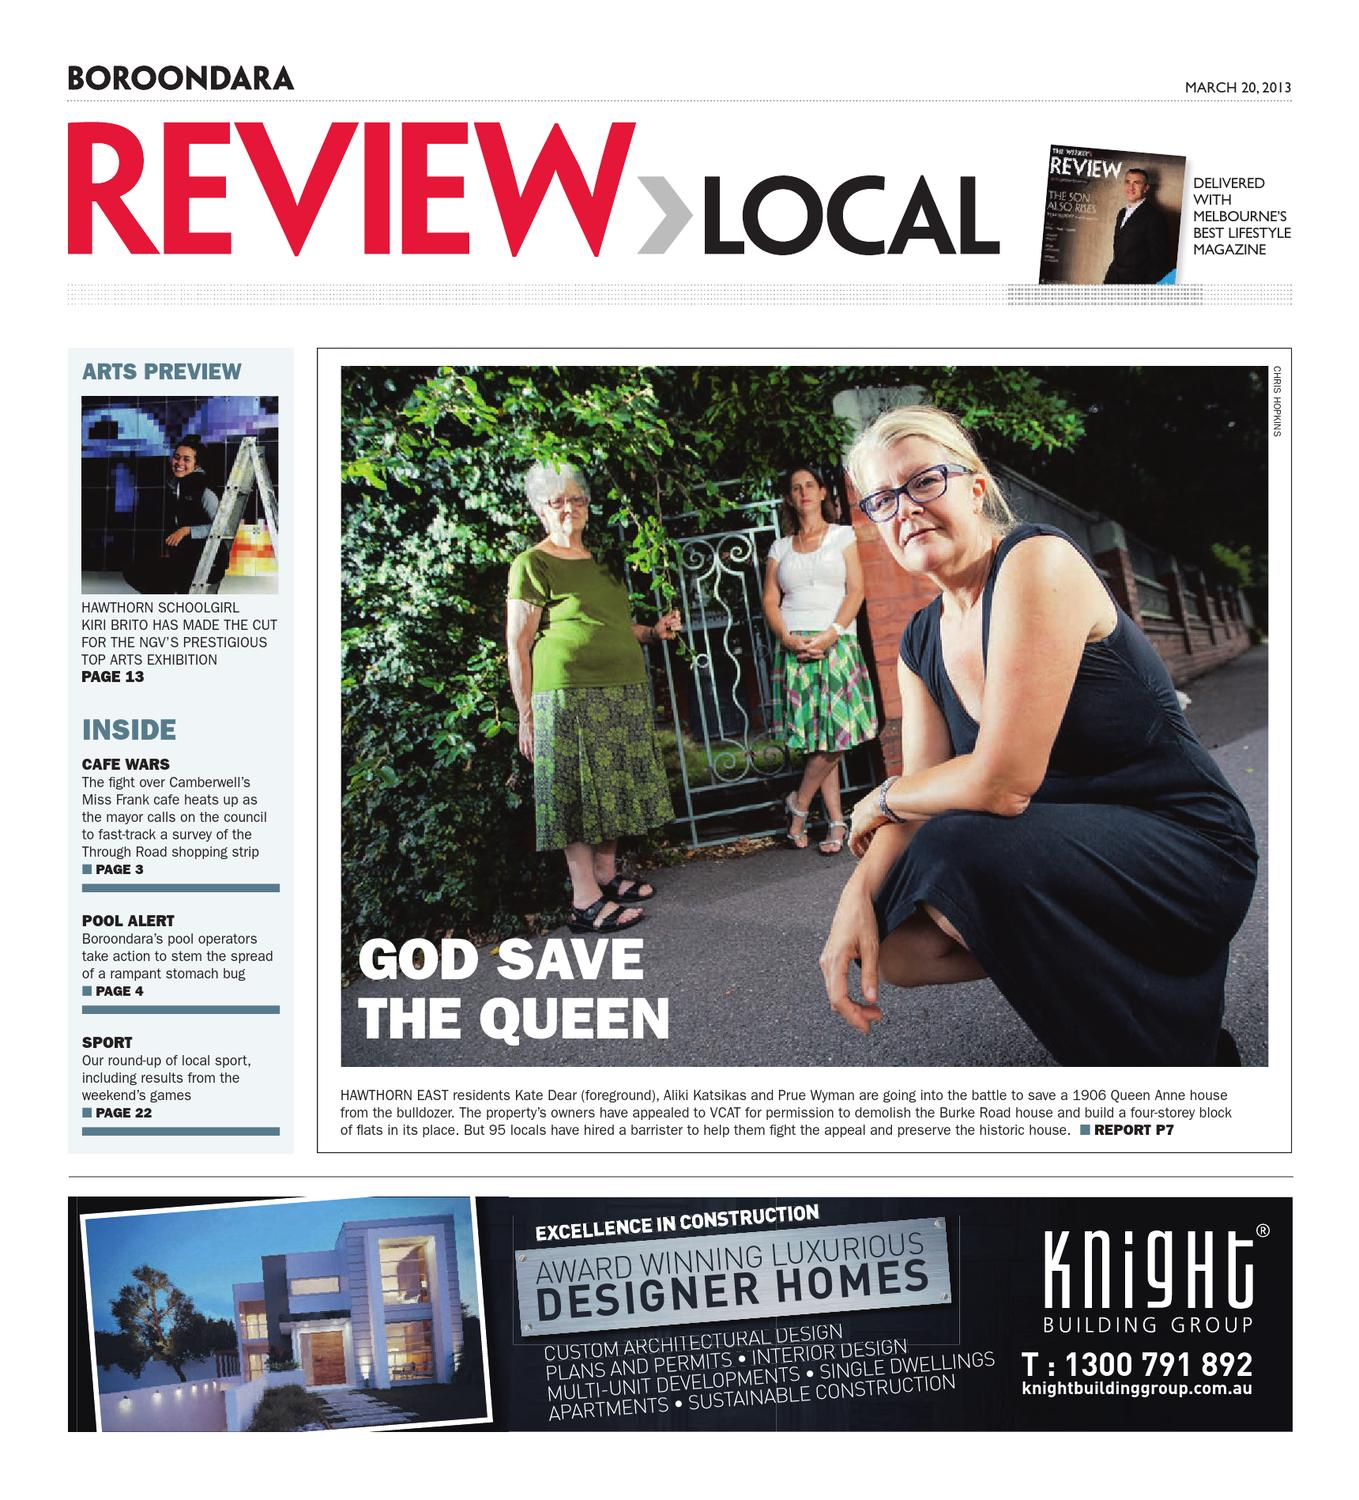 Boroondara Review Local by The Weekly Review - issuu c58525c6f8